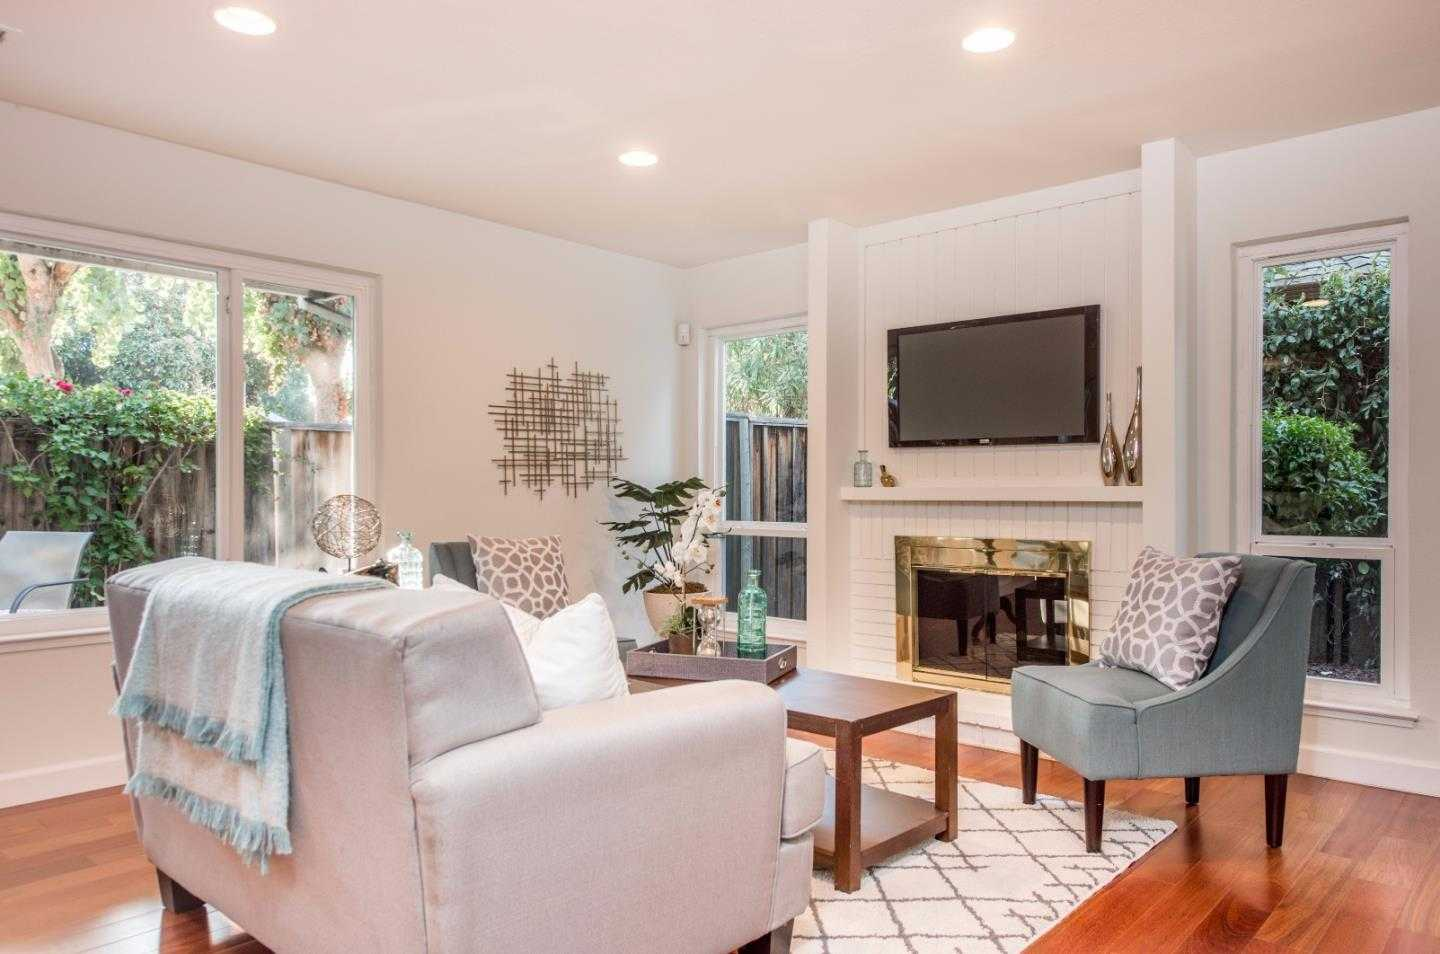 $1,068,000 - 3Br/3Ba -  for Sale in Sunnyvale